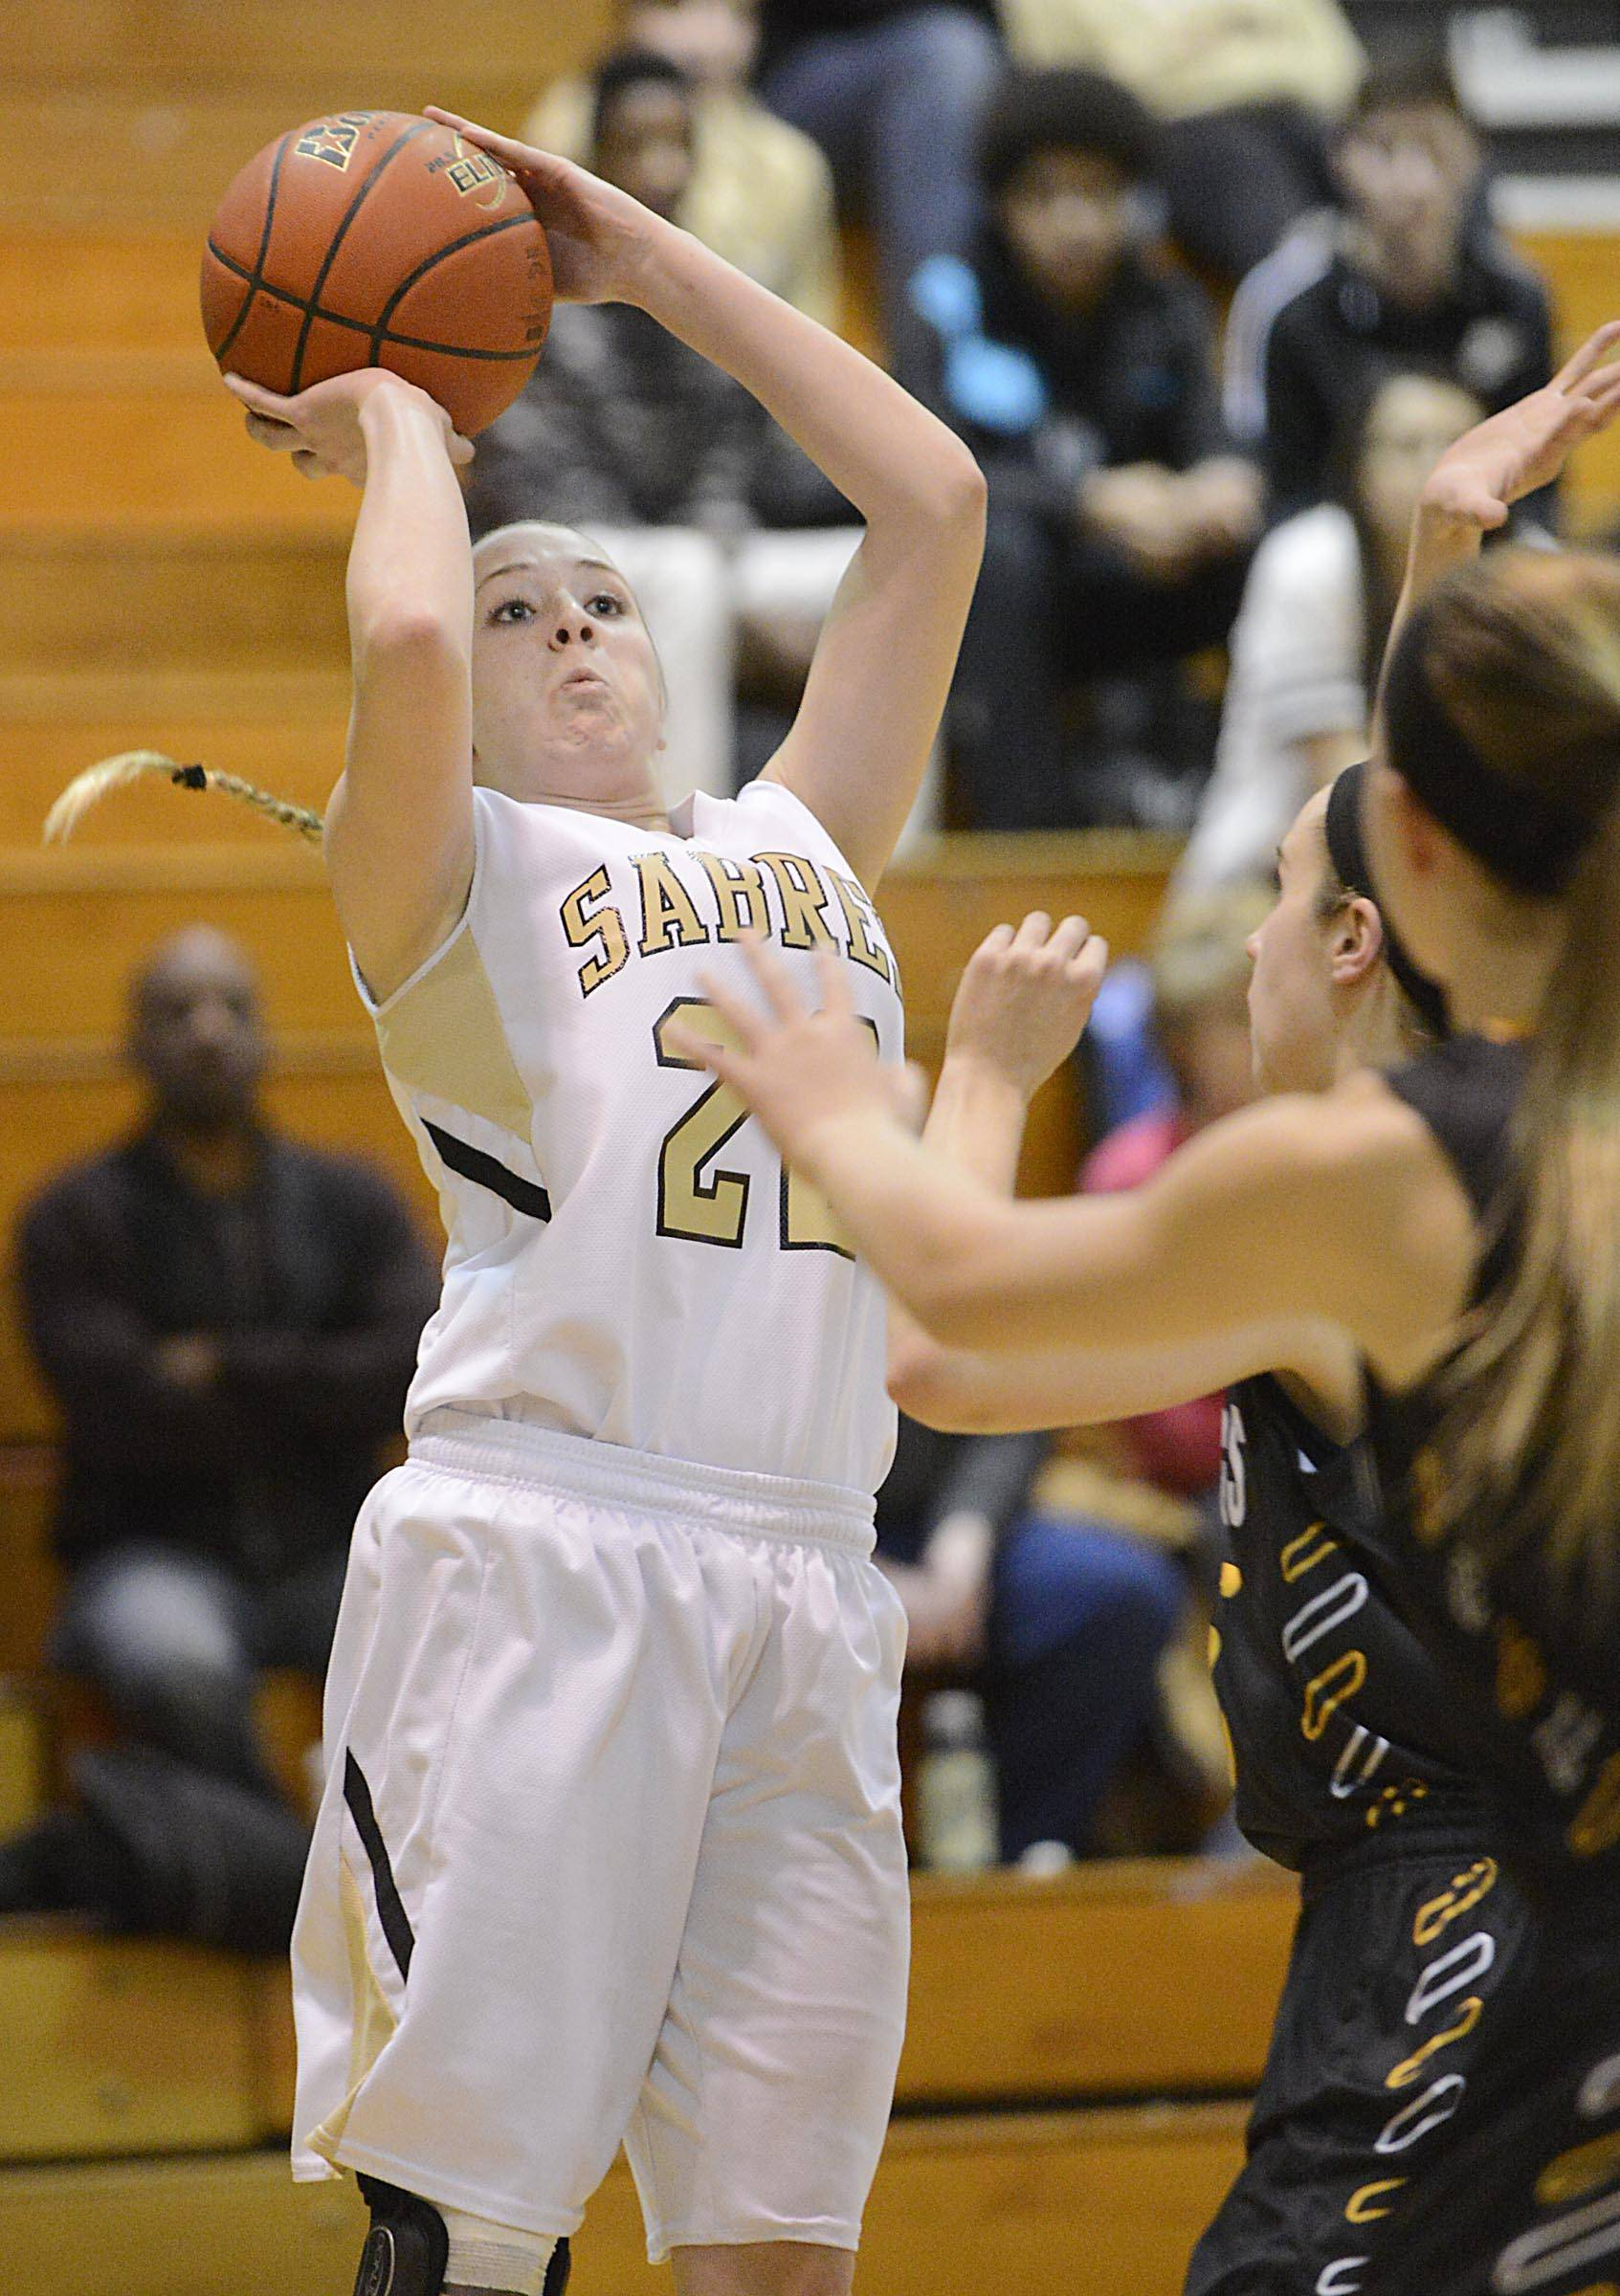 Streamwood's Holly Foret shoots a 3-pointer against Metea Valley Thursday in Streamwood.